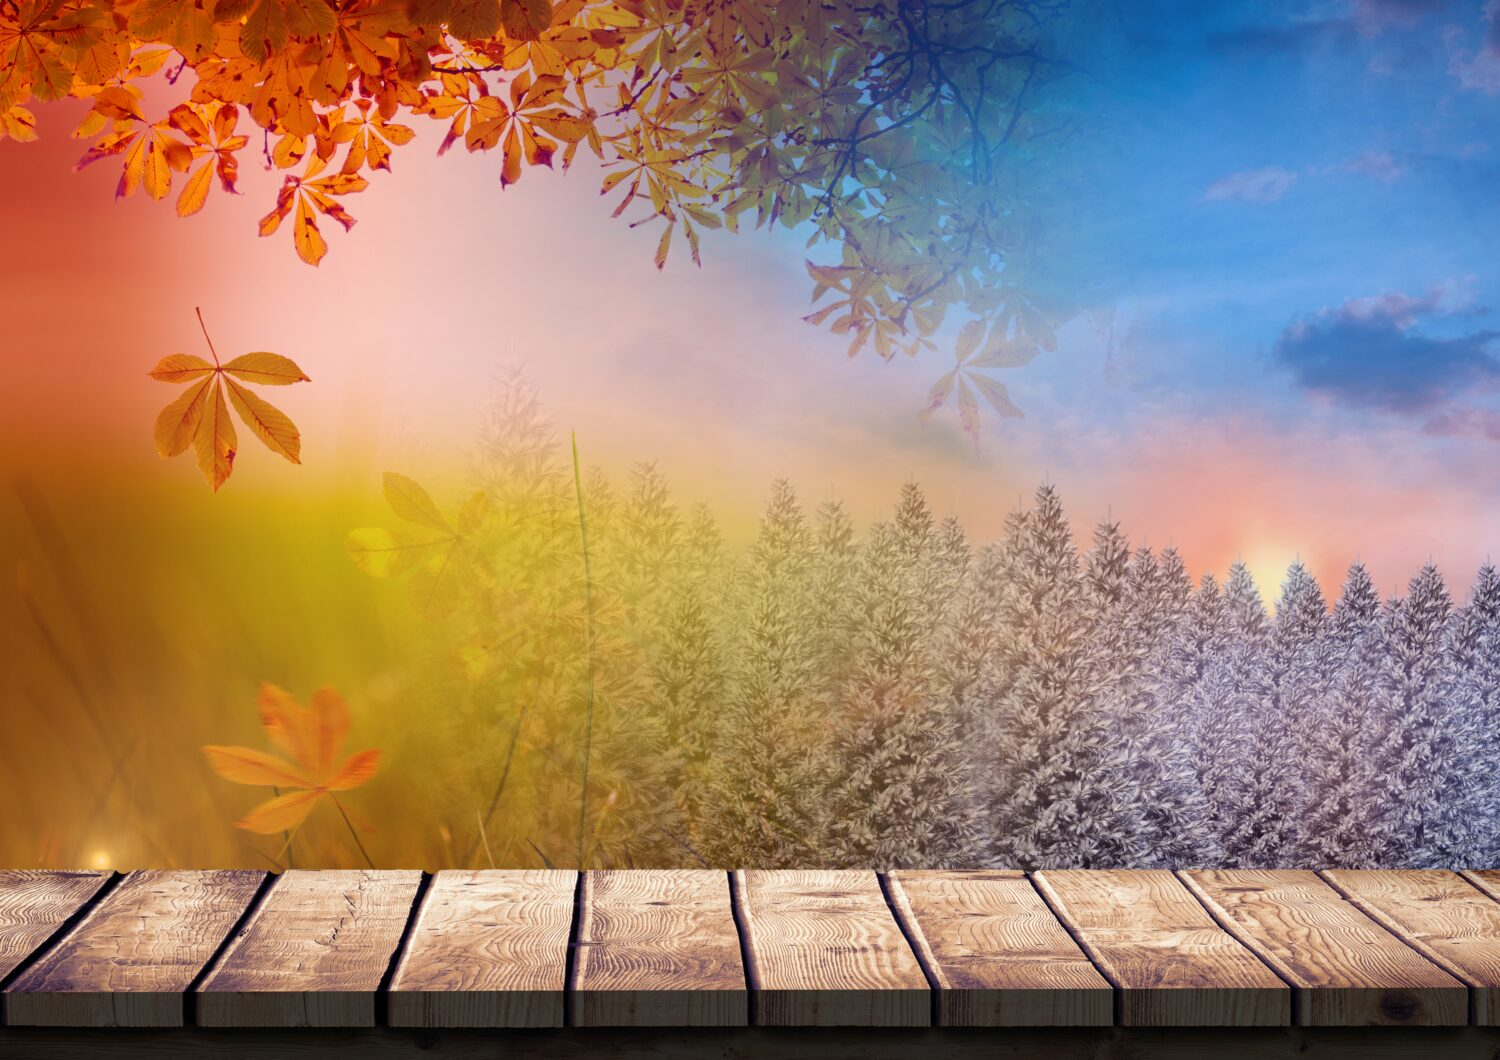 Digital composition of autumn and winter season with wooden walkway